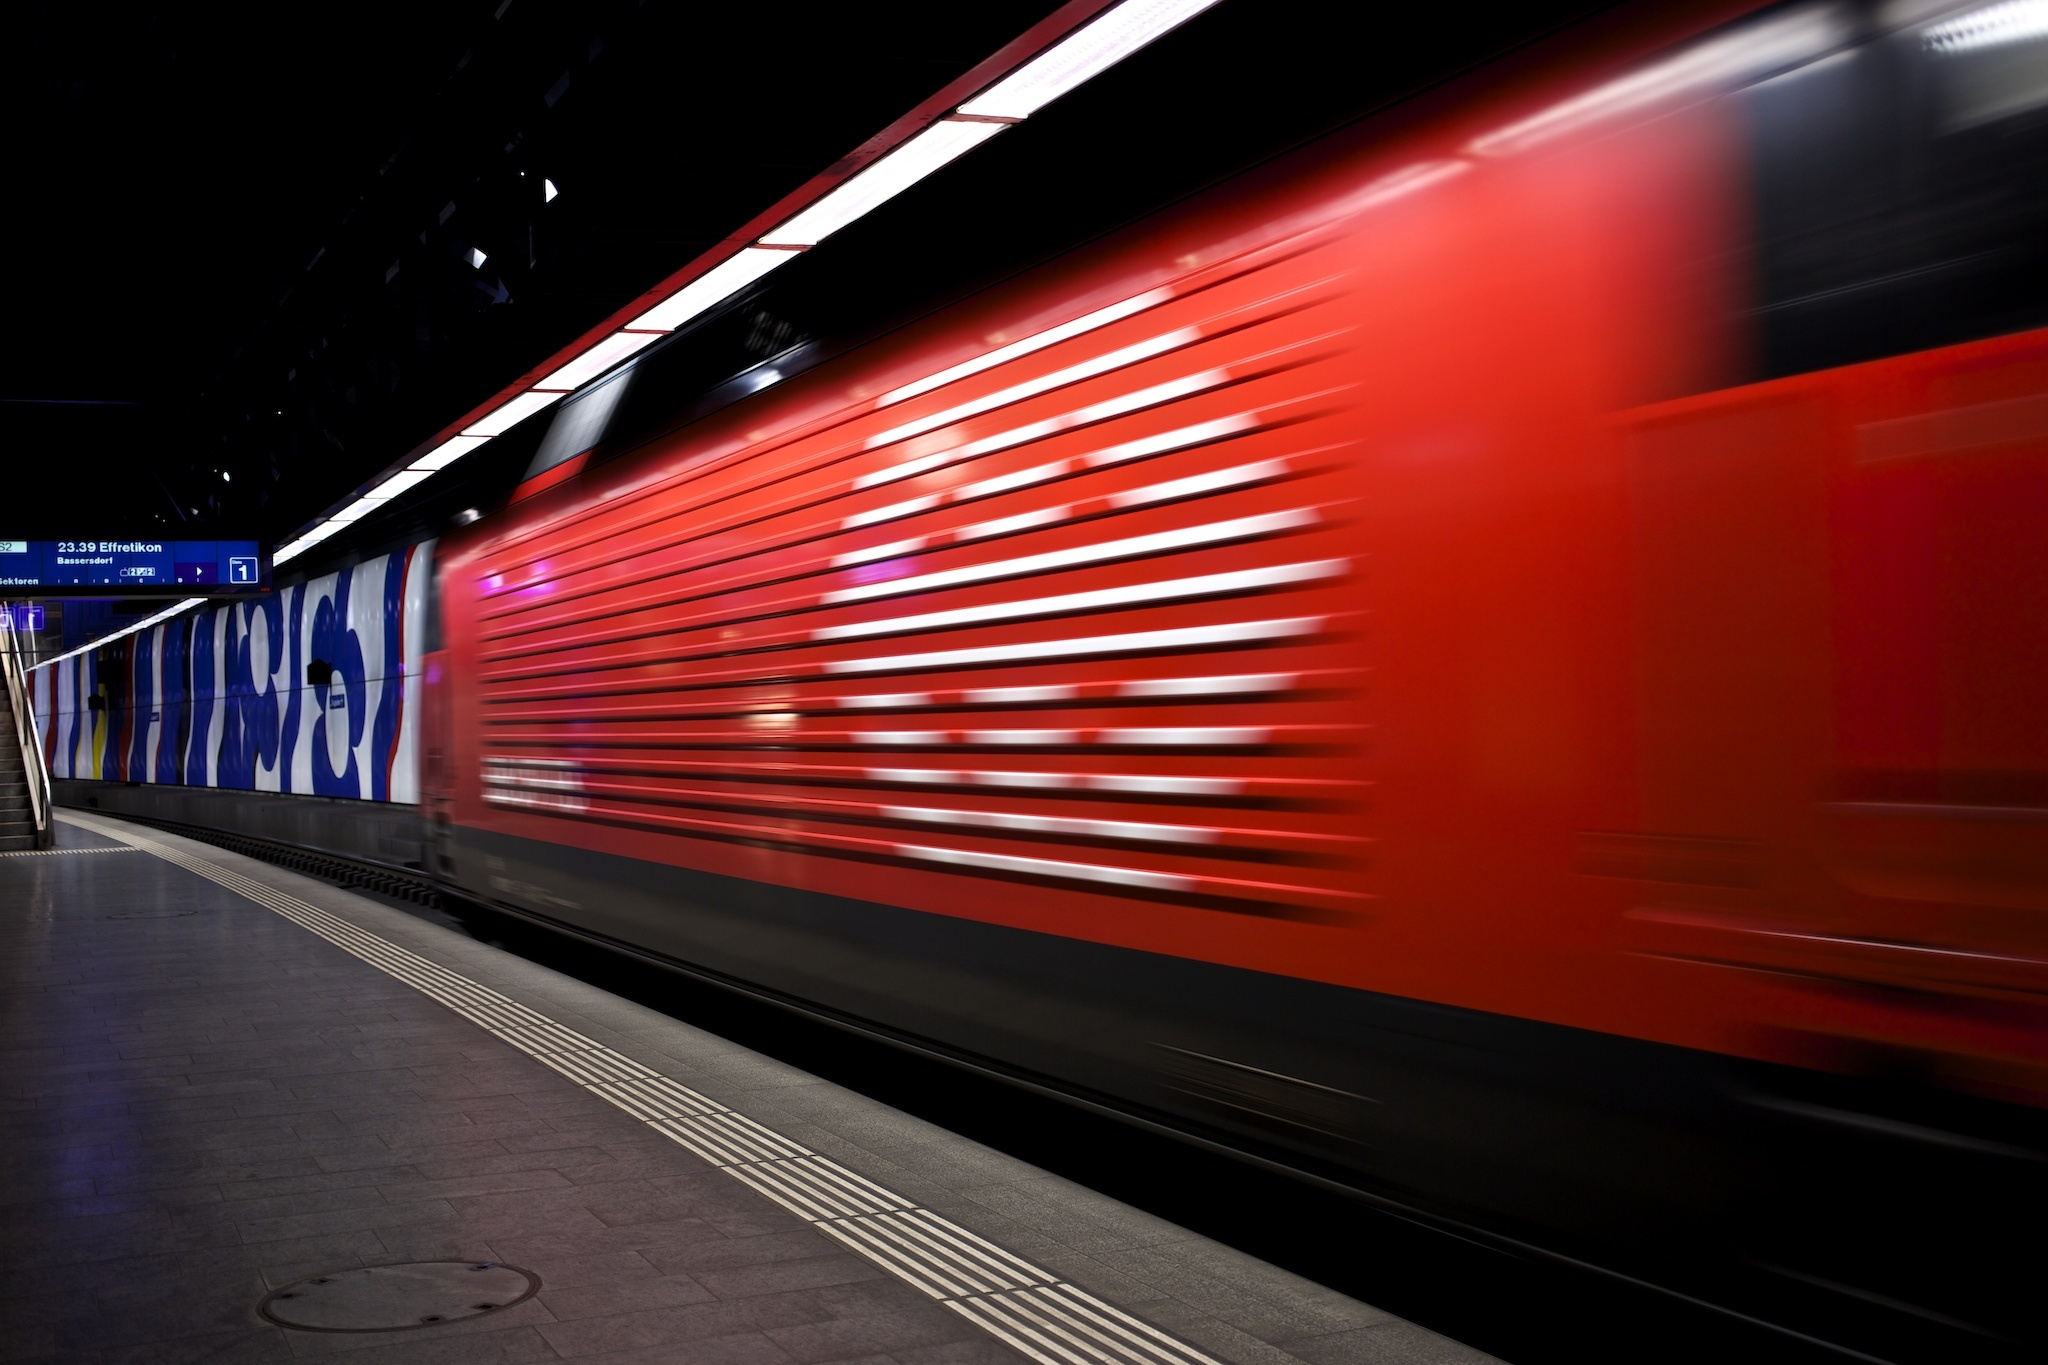 A CHF130 penalty for a 'late' ticket: is this the silliest train fine fine ever?